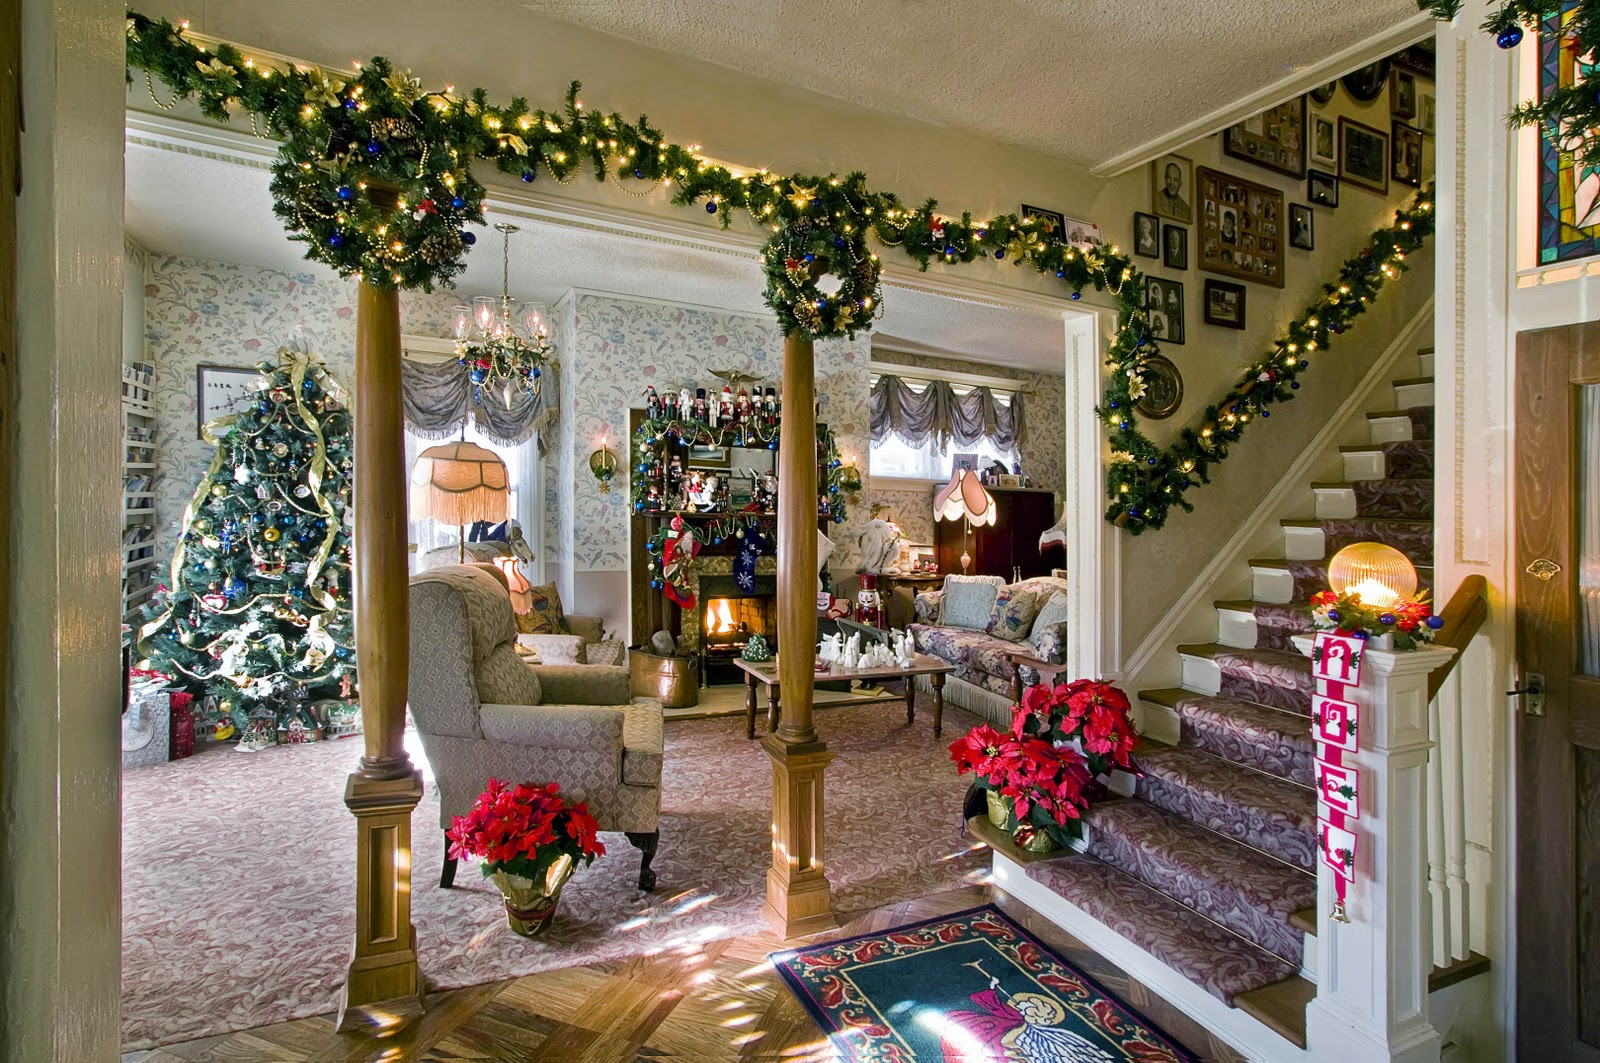 holiday gift certificate discount offer for that special someone at holden house 1902 bed breakfast in colorado springs